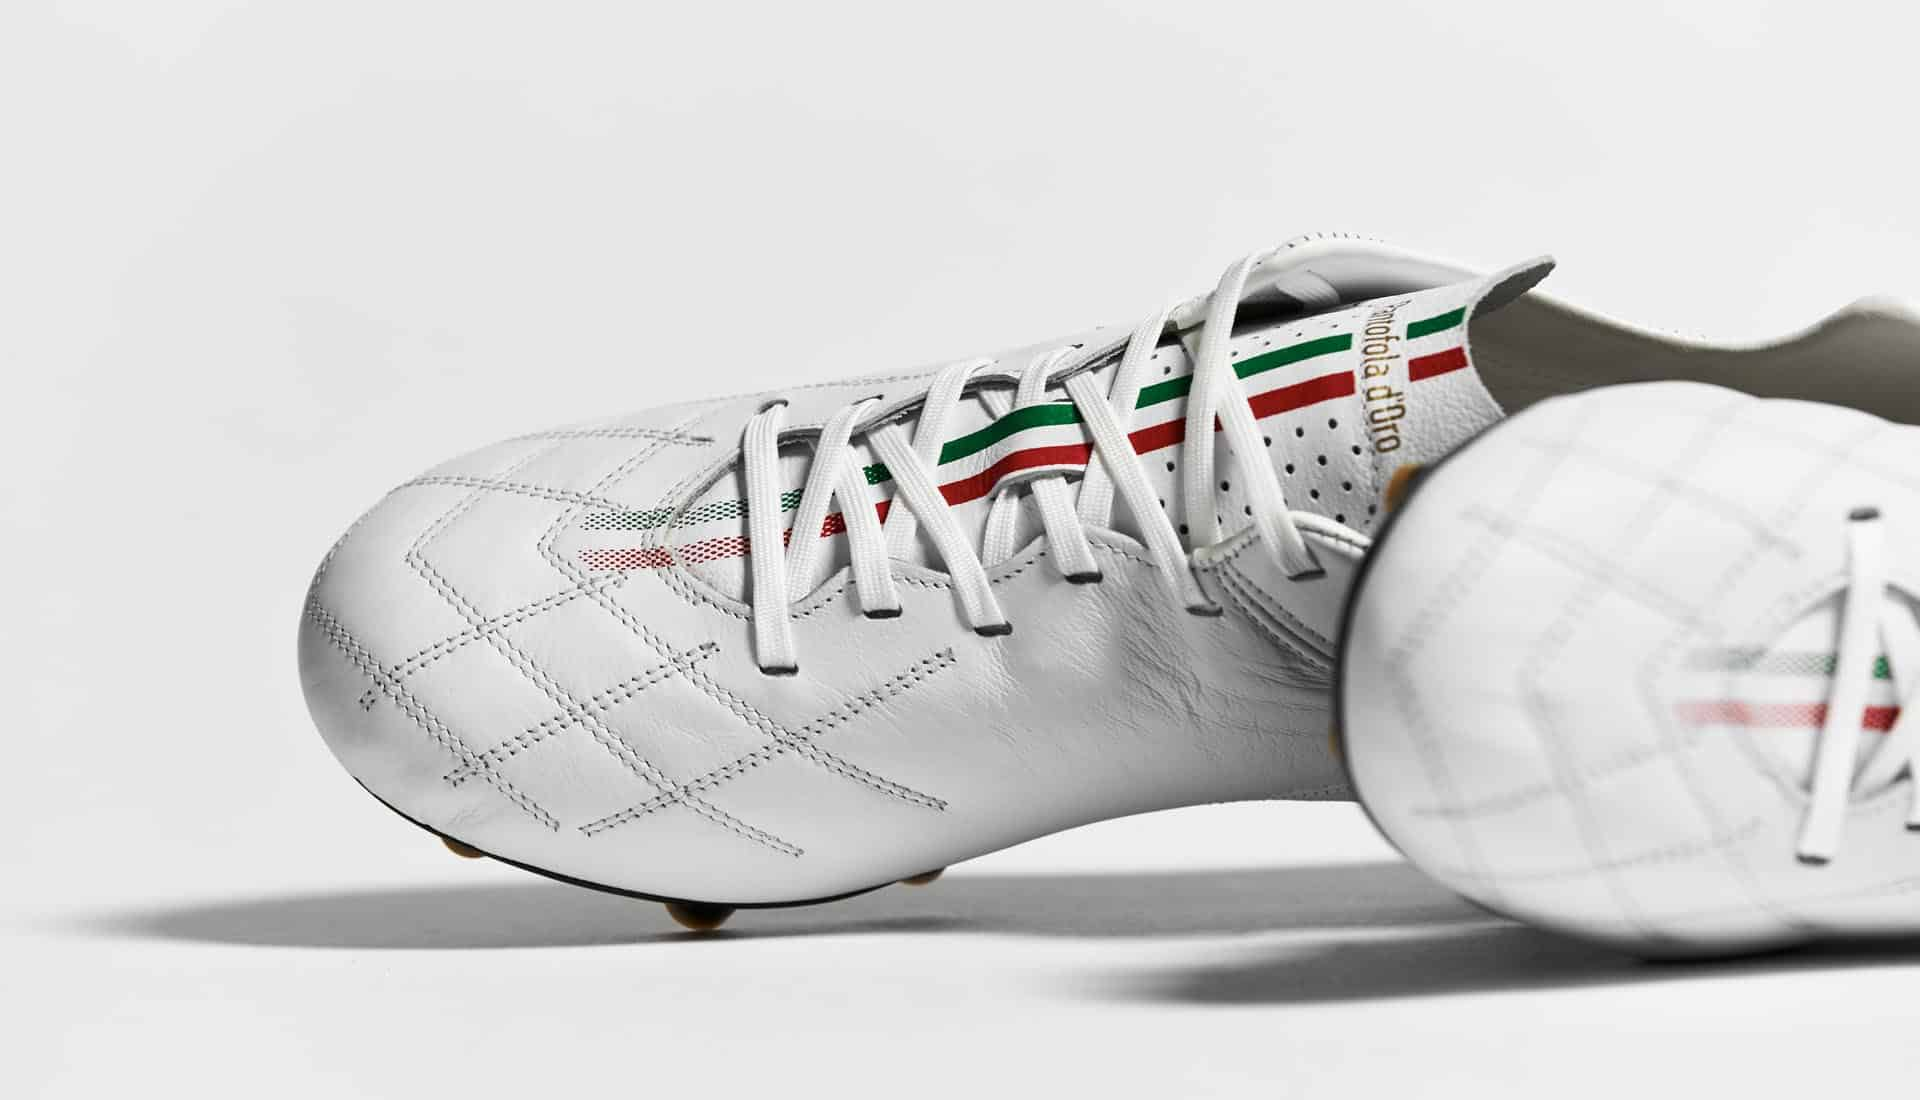 chaussures-football-Pantofola-d-Oro-Superleggera-blanc-img6